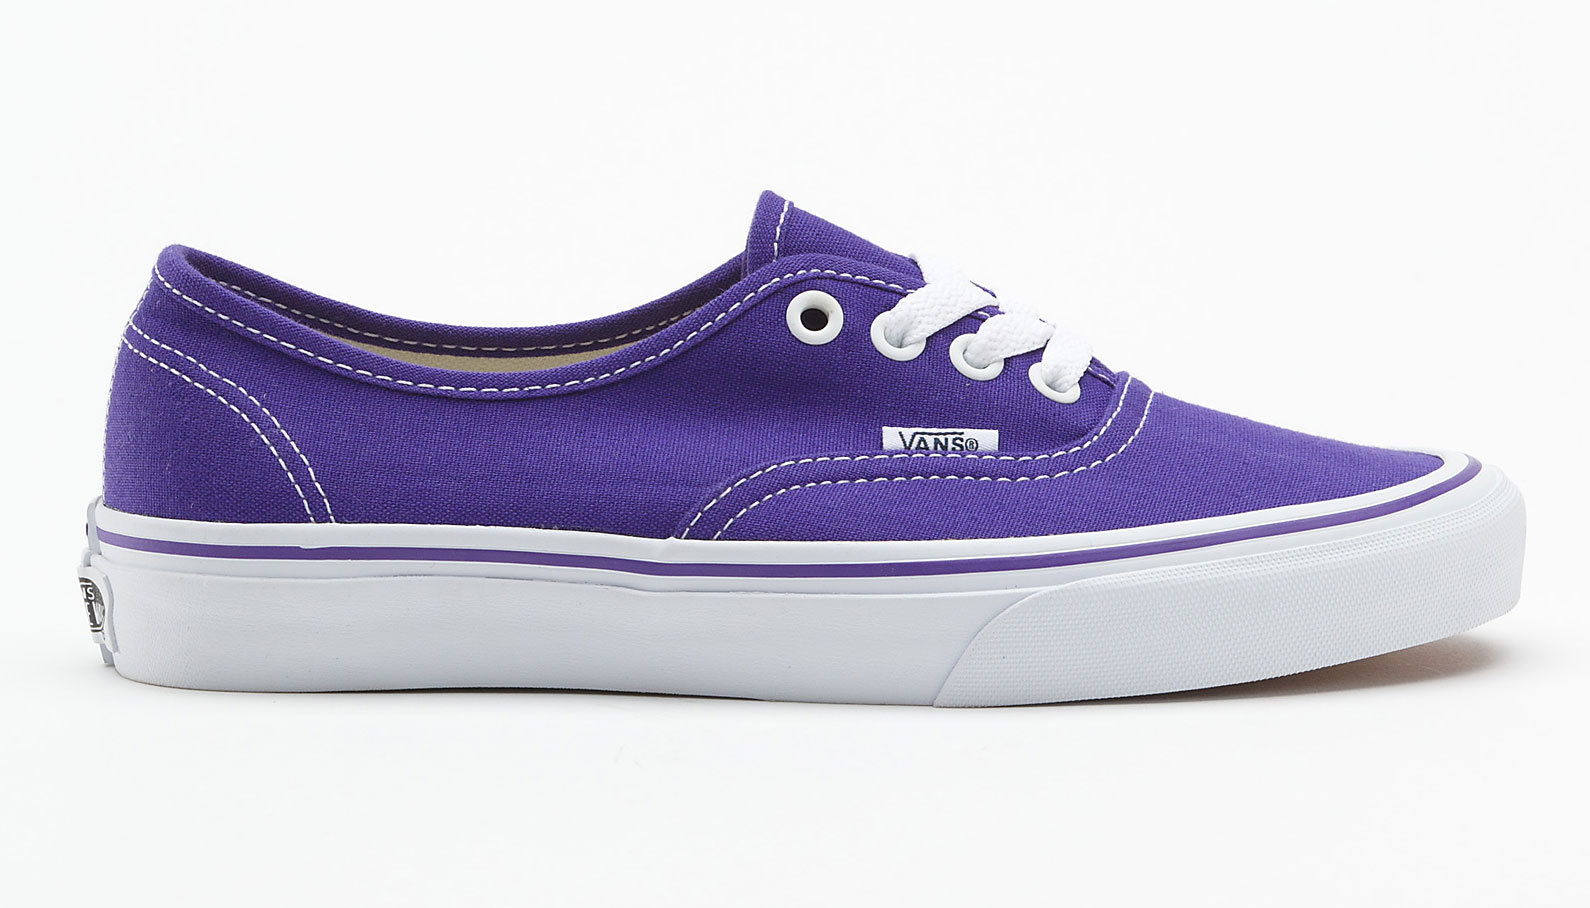 vans womens shoes from tilly s